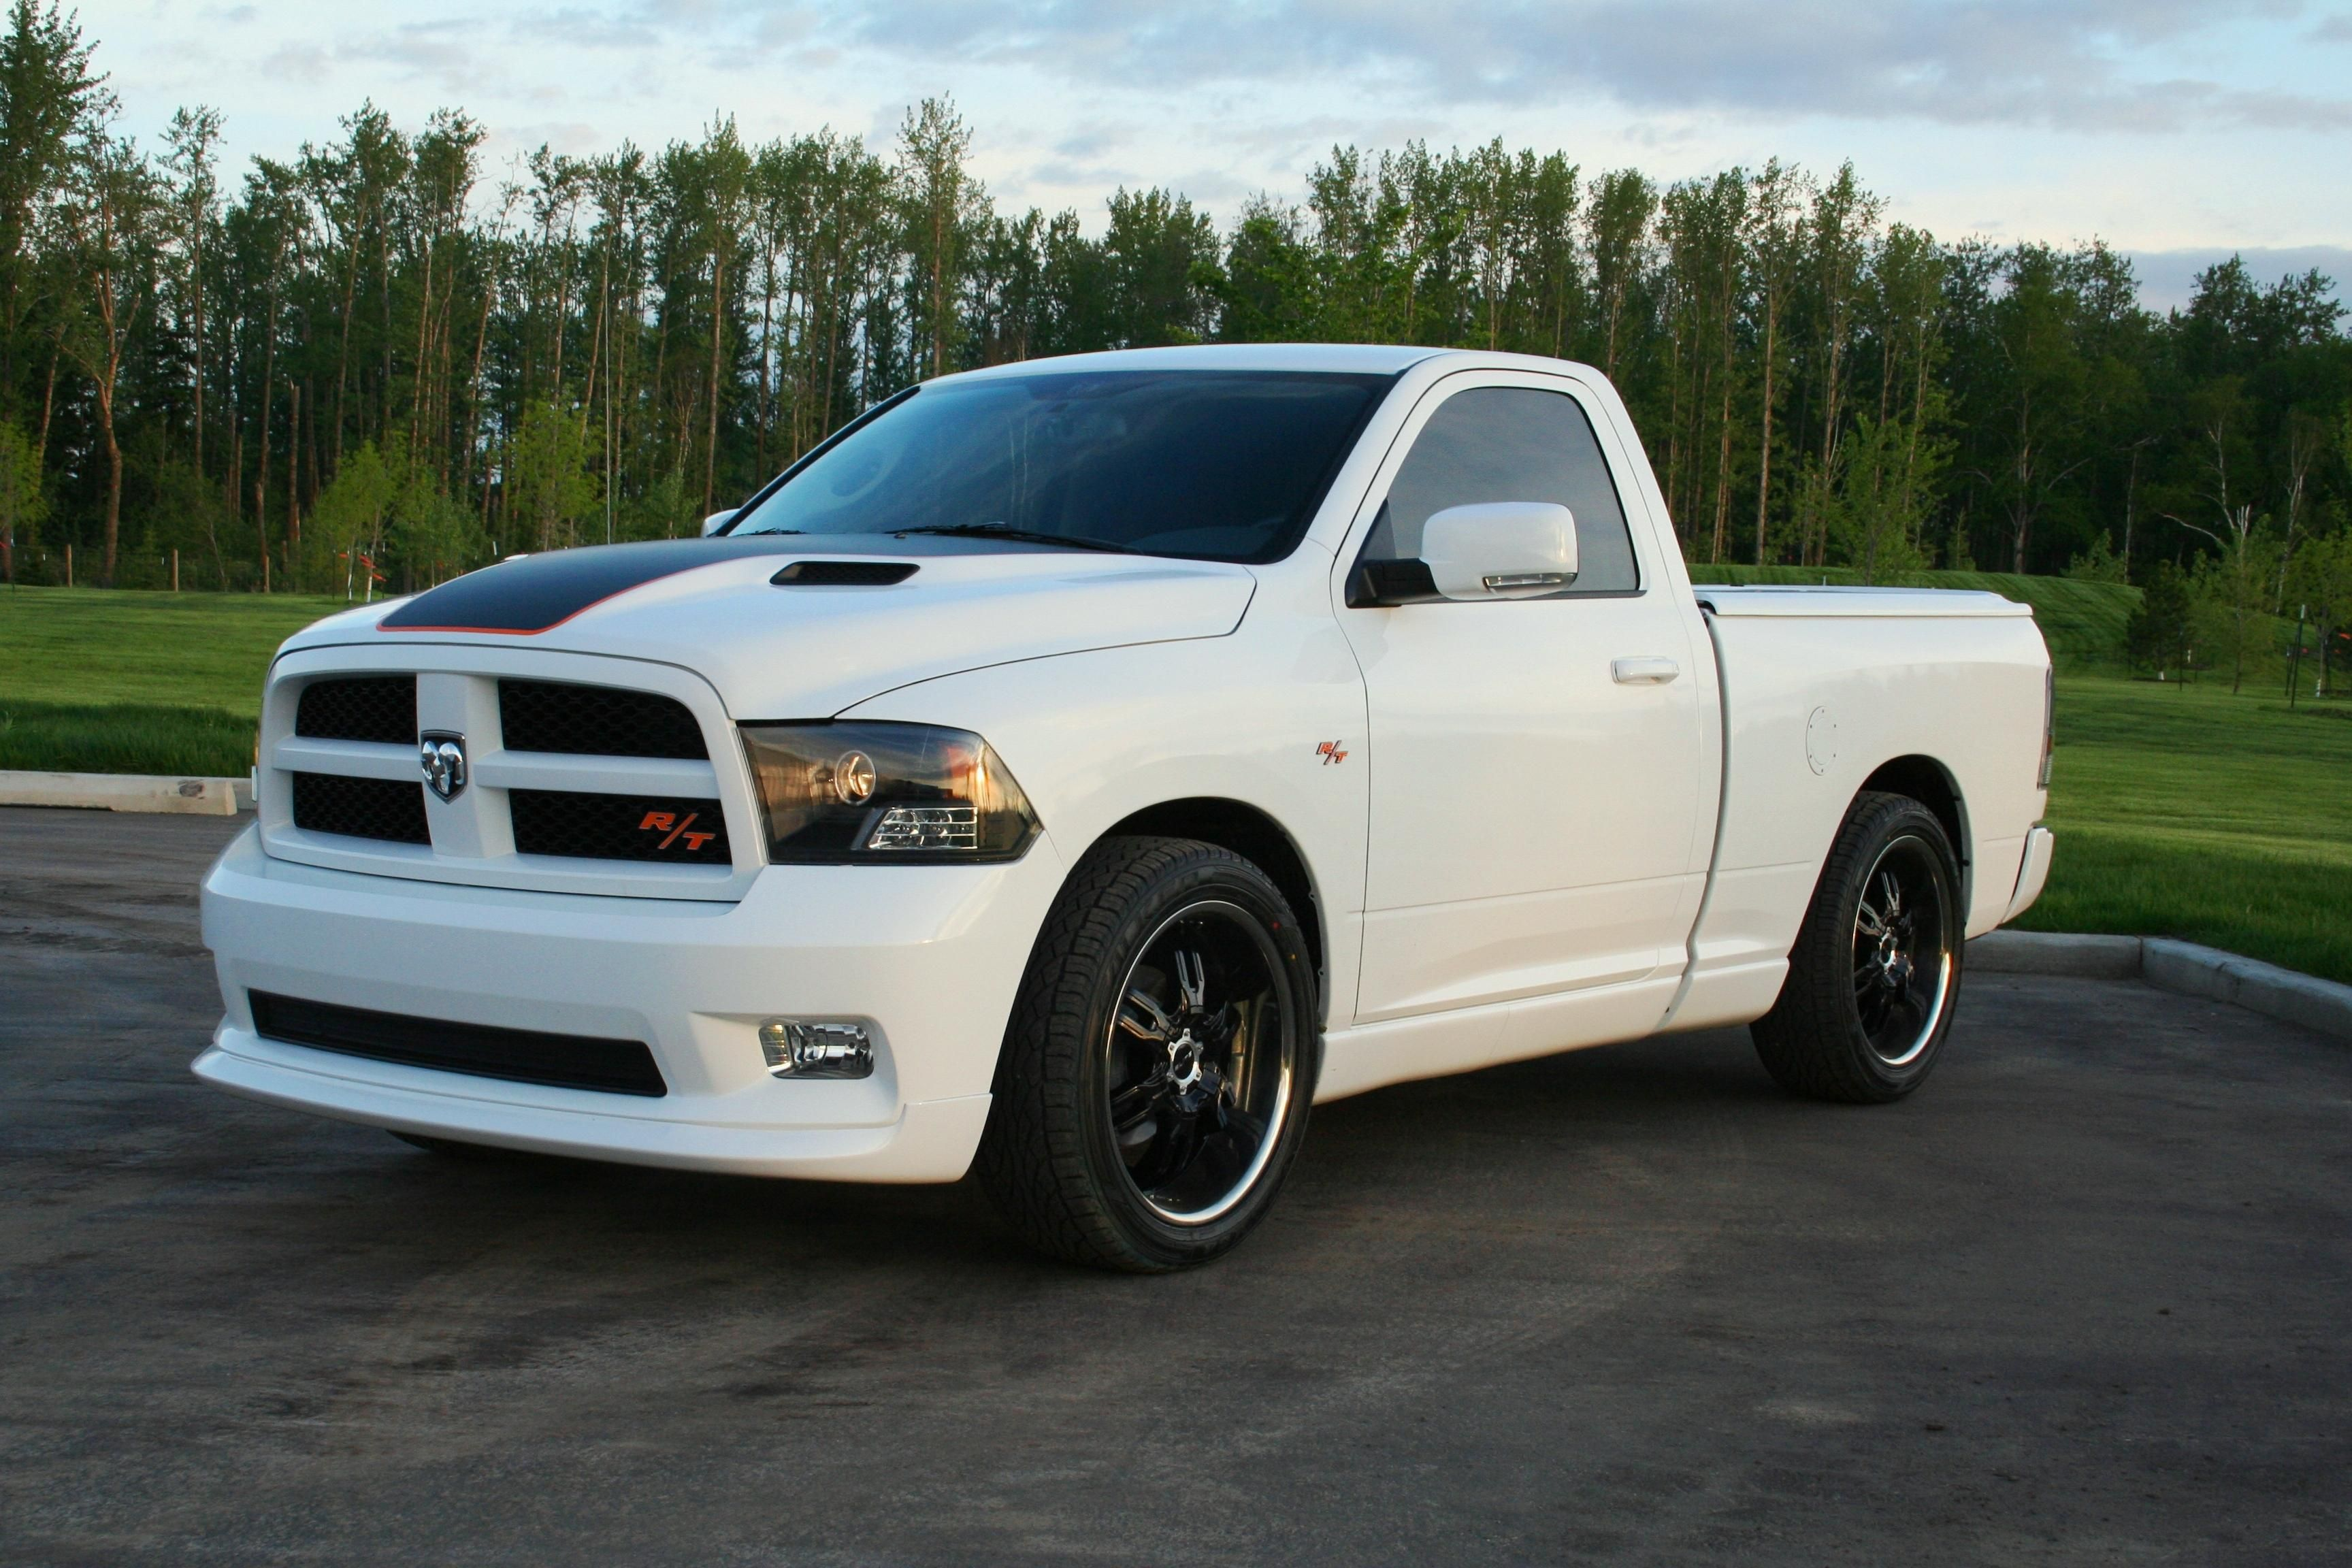 check out the latest djdivine 39 s 2010 dodge ram 1500 regular cab photos at cardomain stuff to. Black Bedroom Furniture Sets. Home Design Ideas